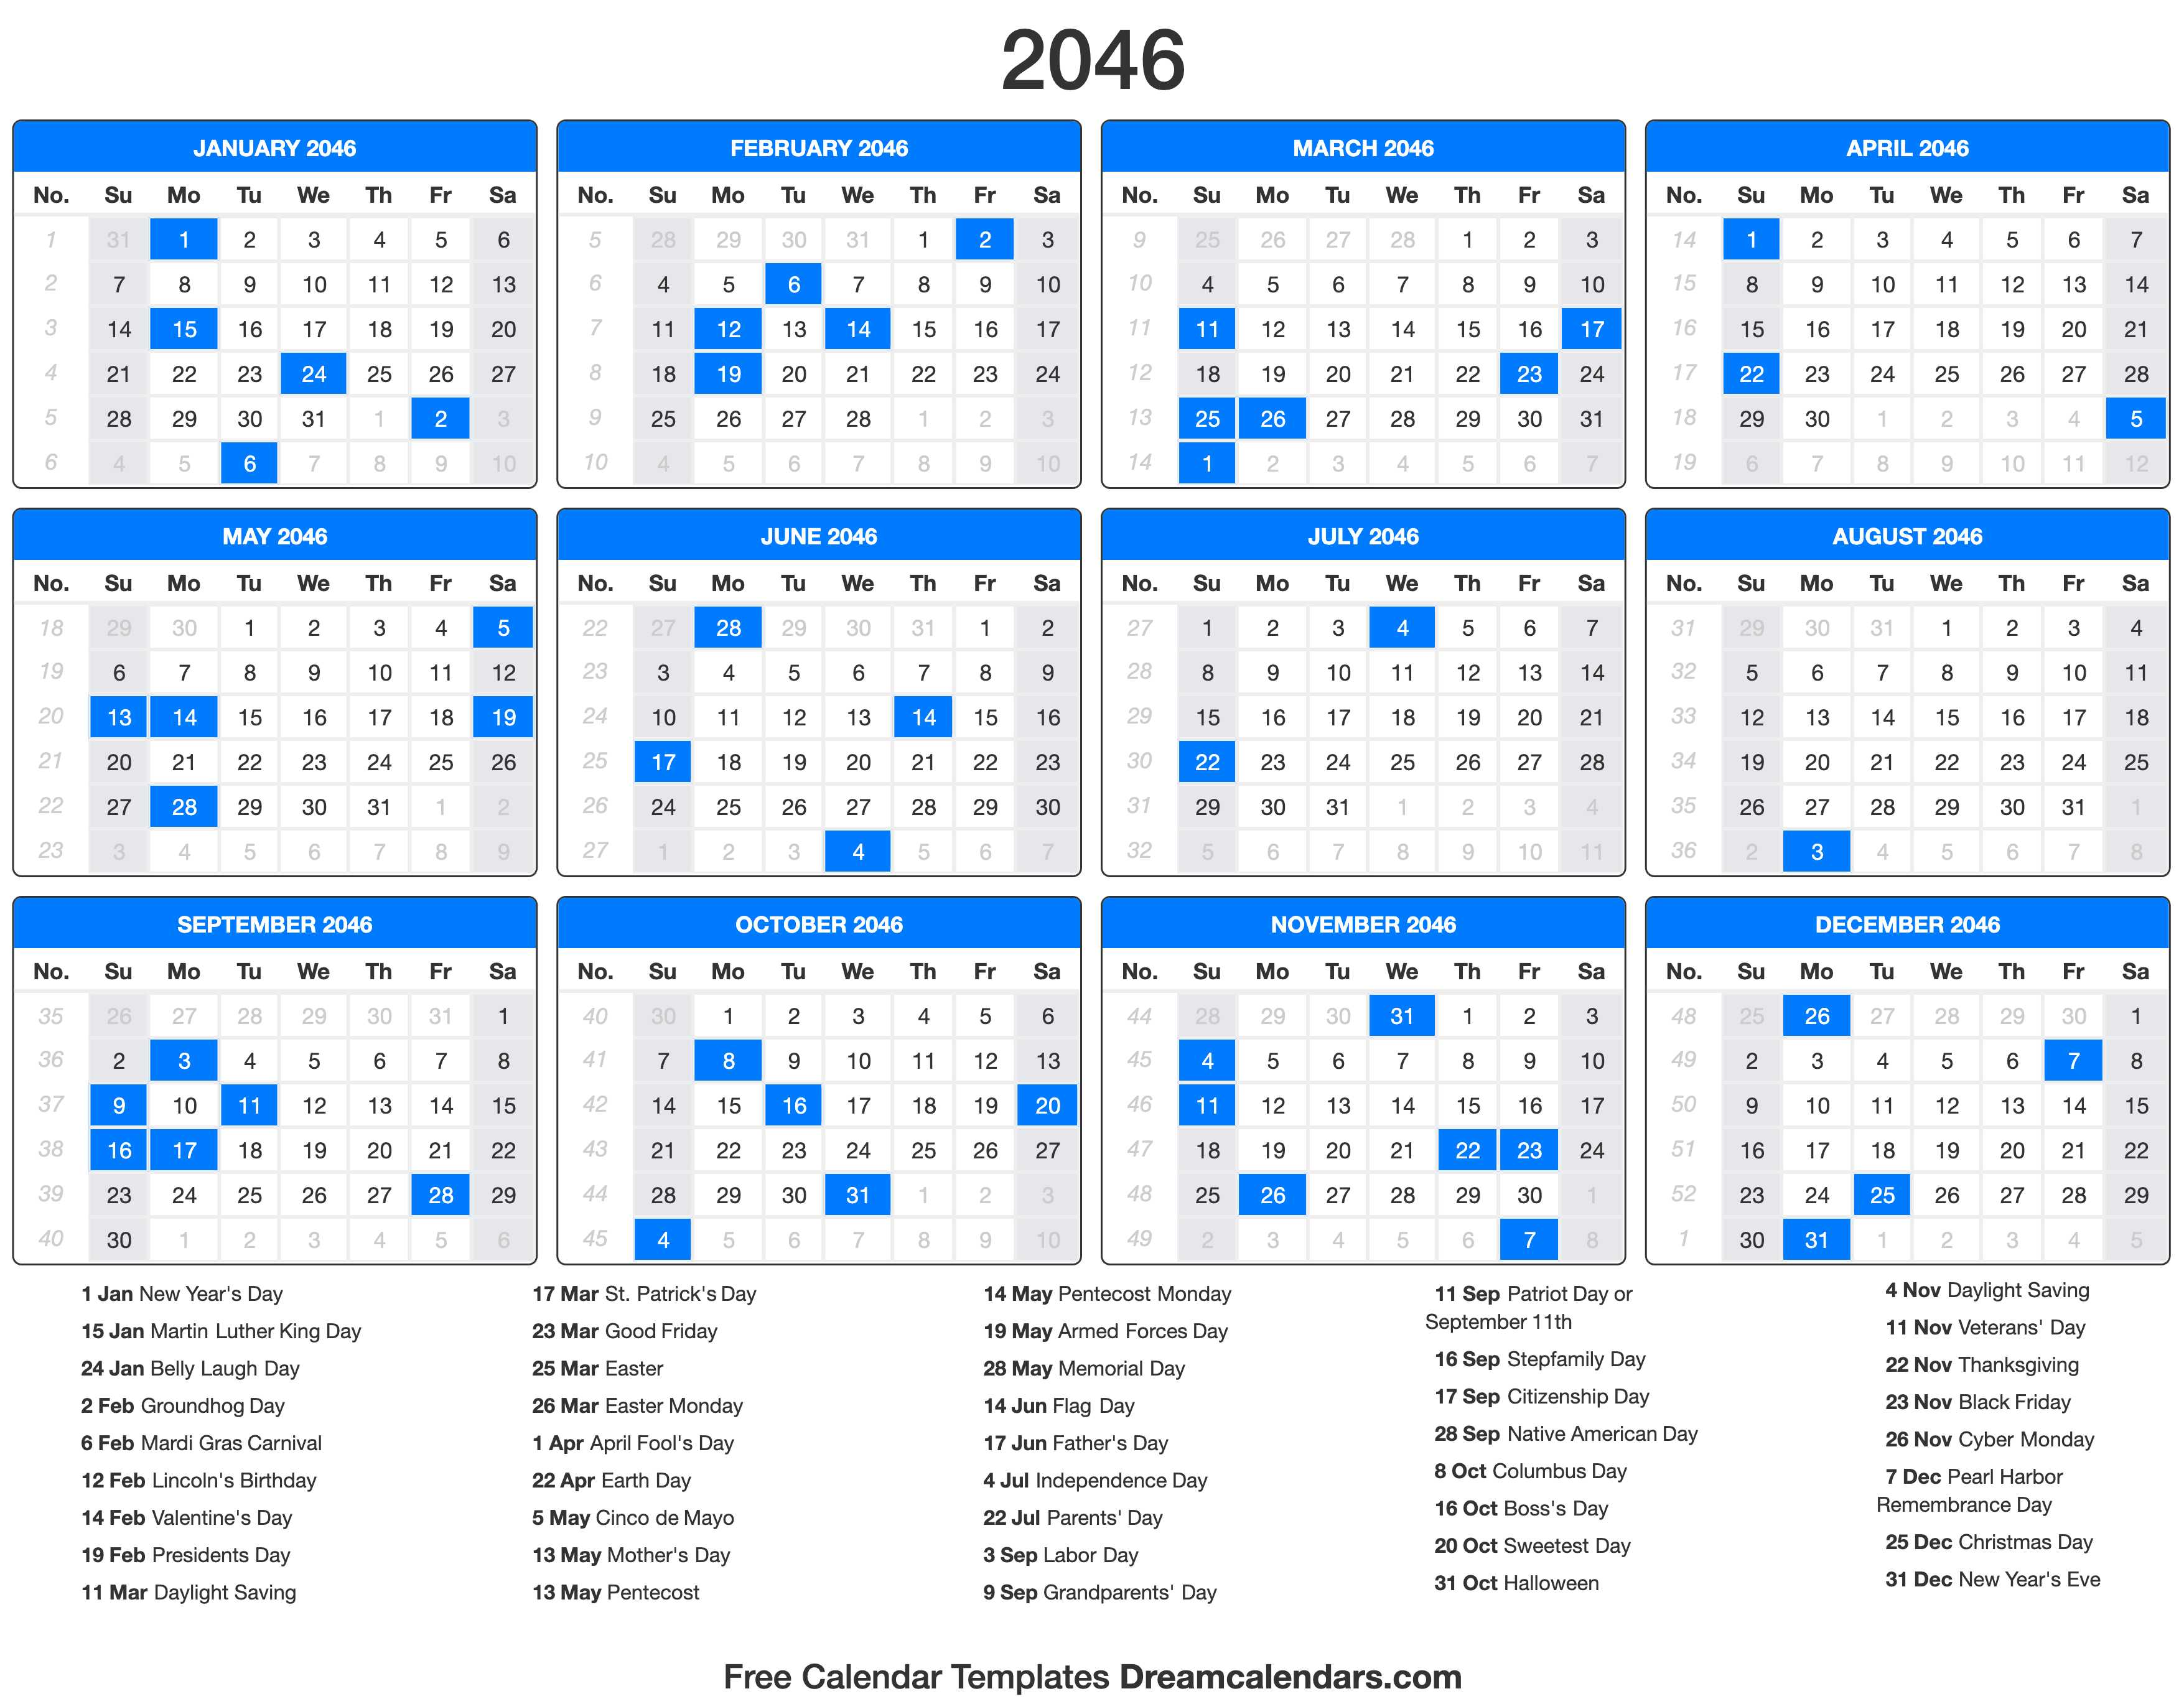 2046 Calendar with holidays